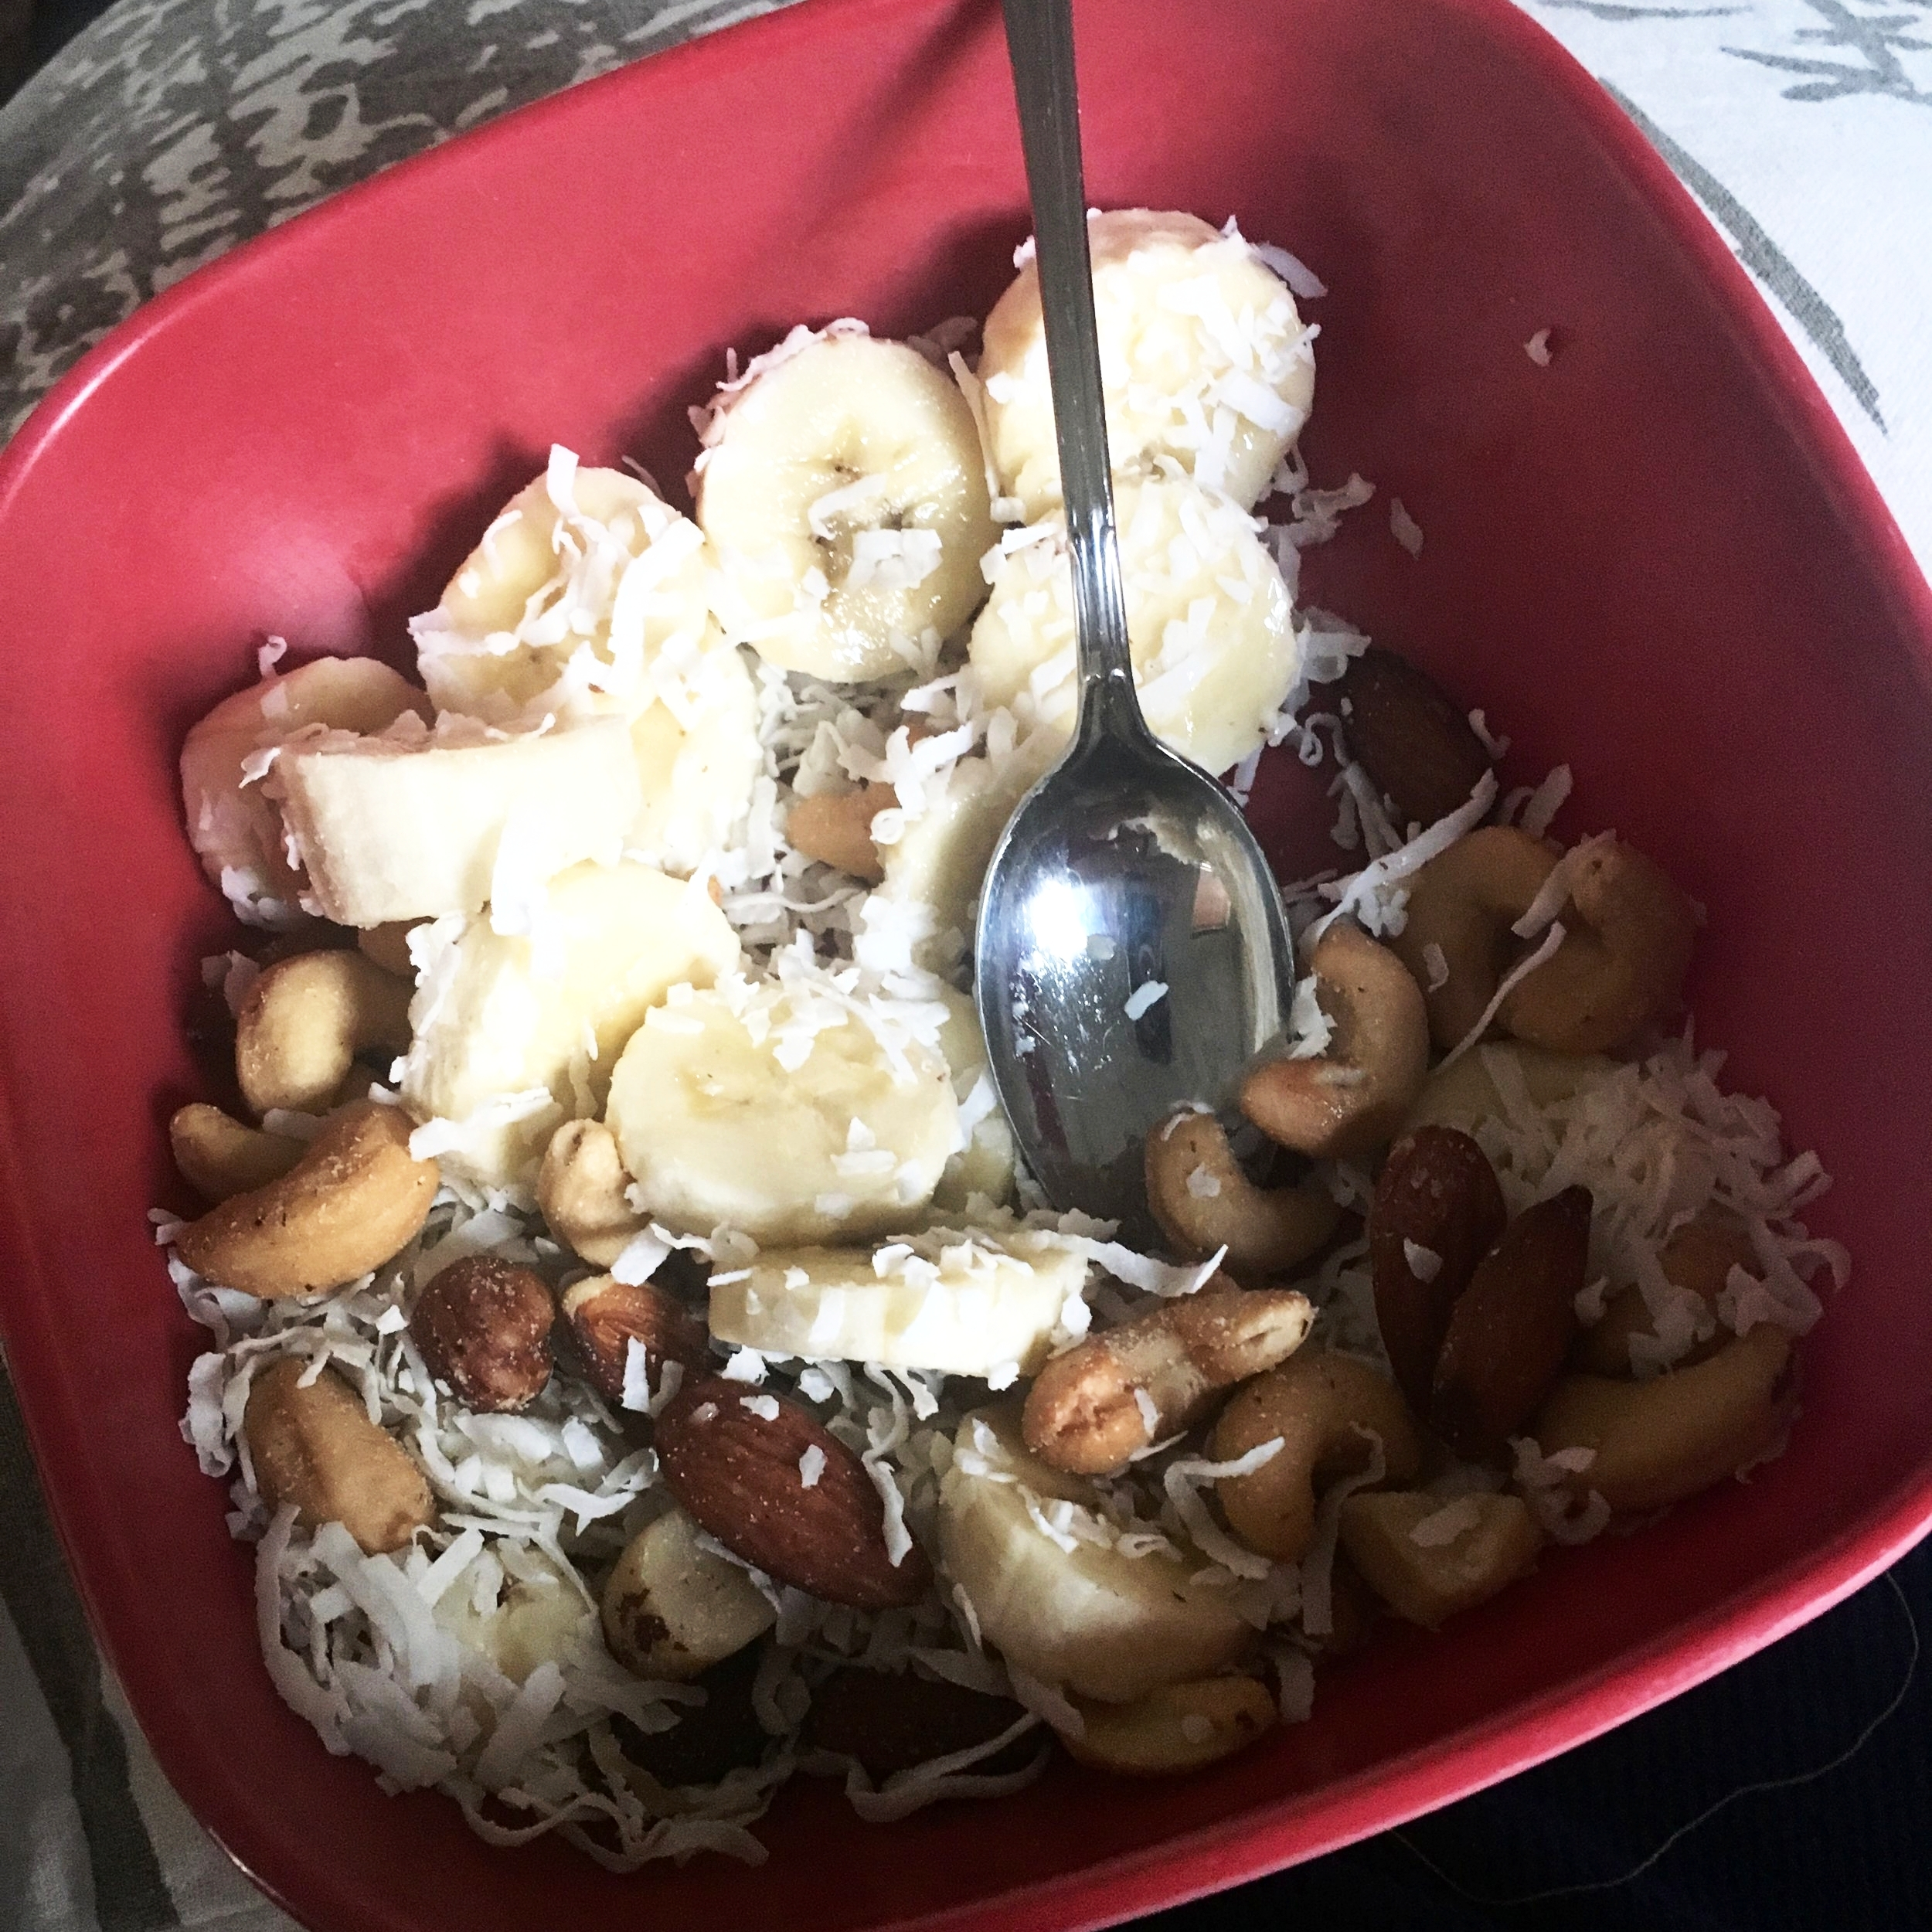 1 Banana, 2-3 tbsp shredded unsweetened coconut, palm full of mixed nuts. So good!